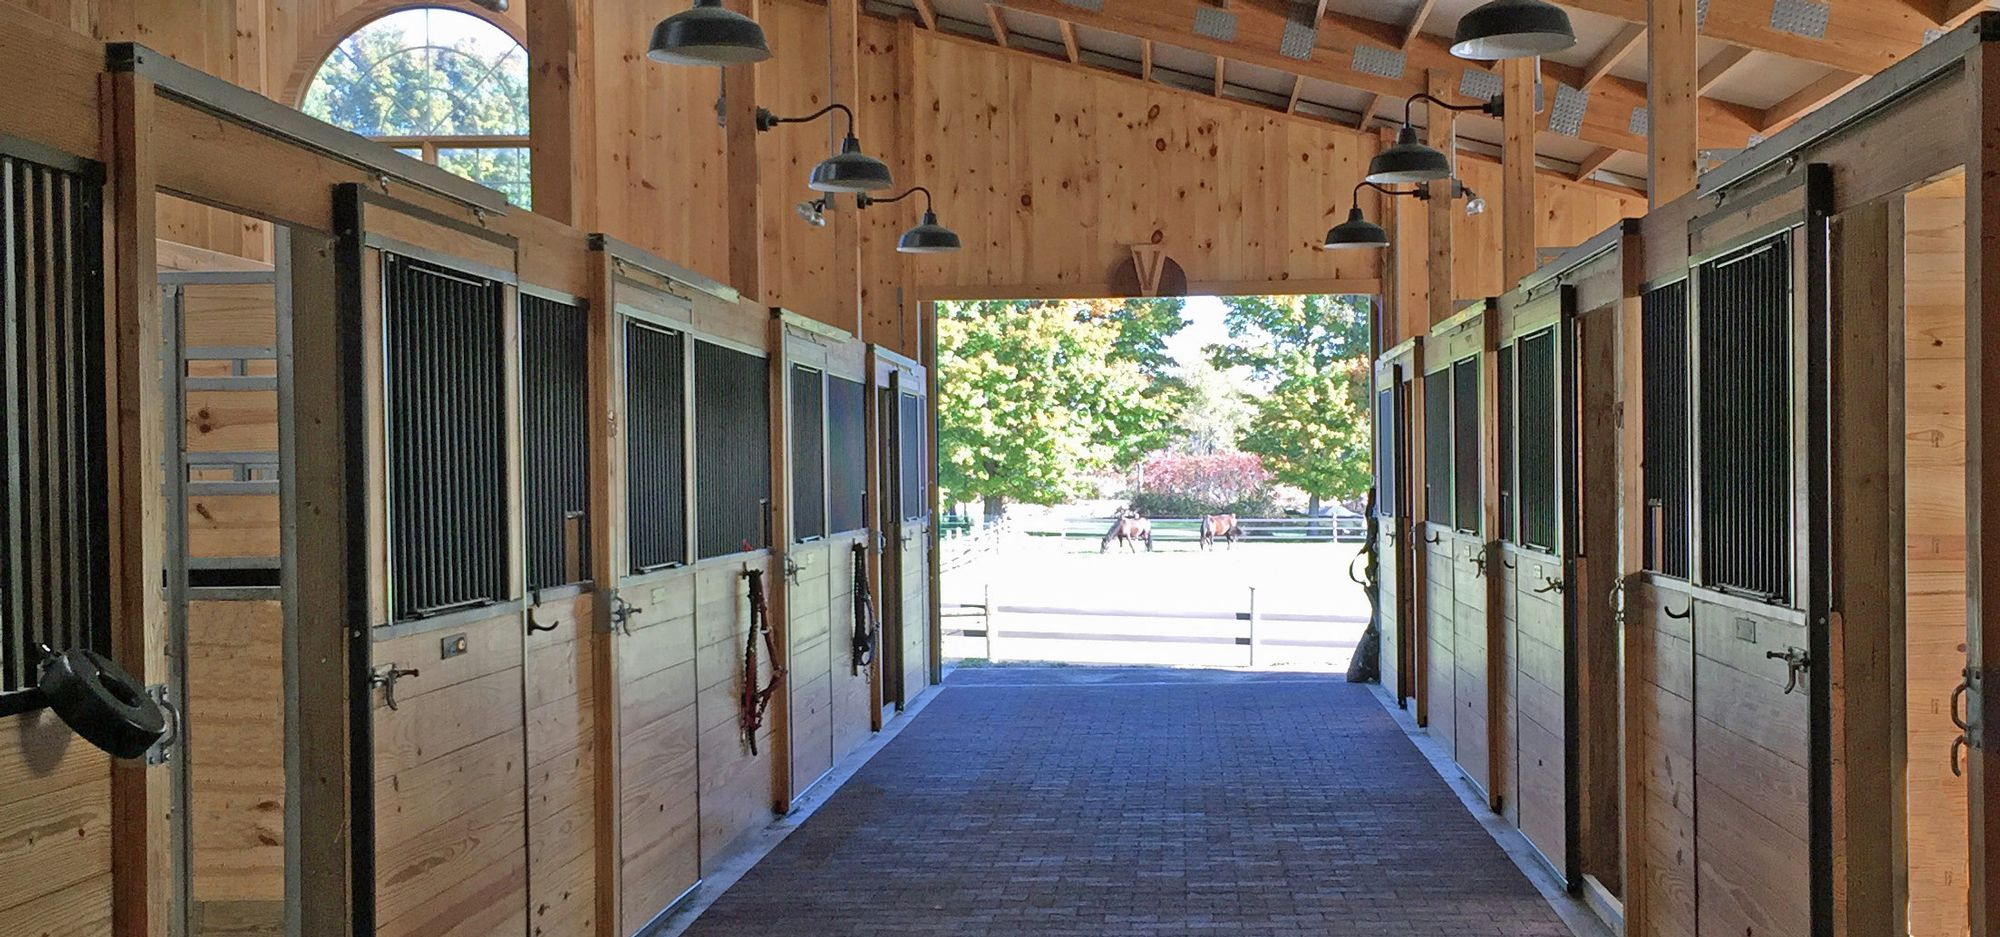 Our brand new 16 stall horse barn